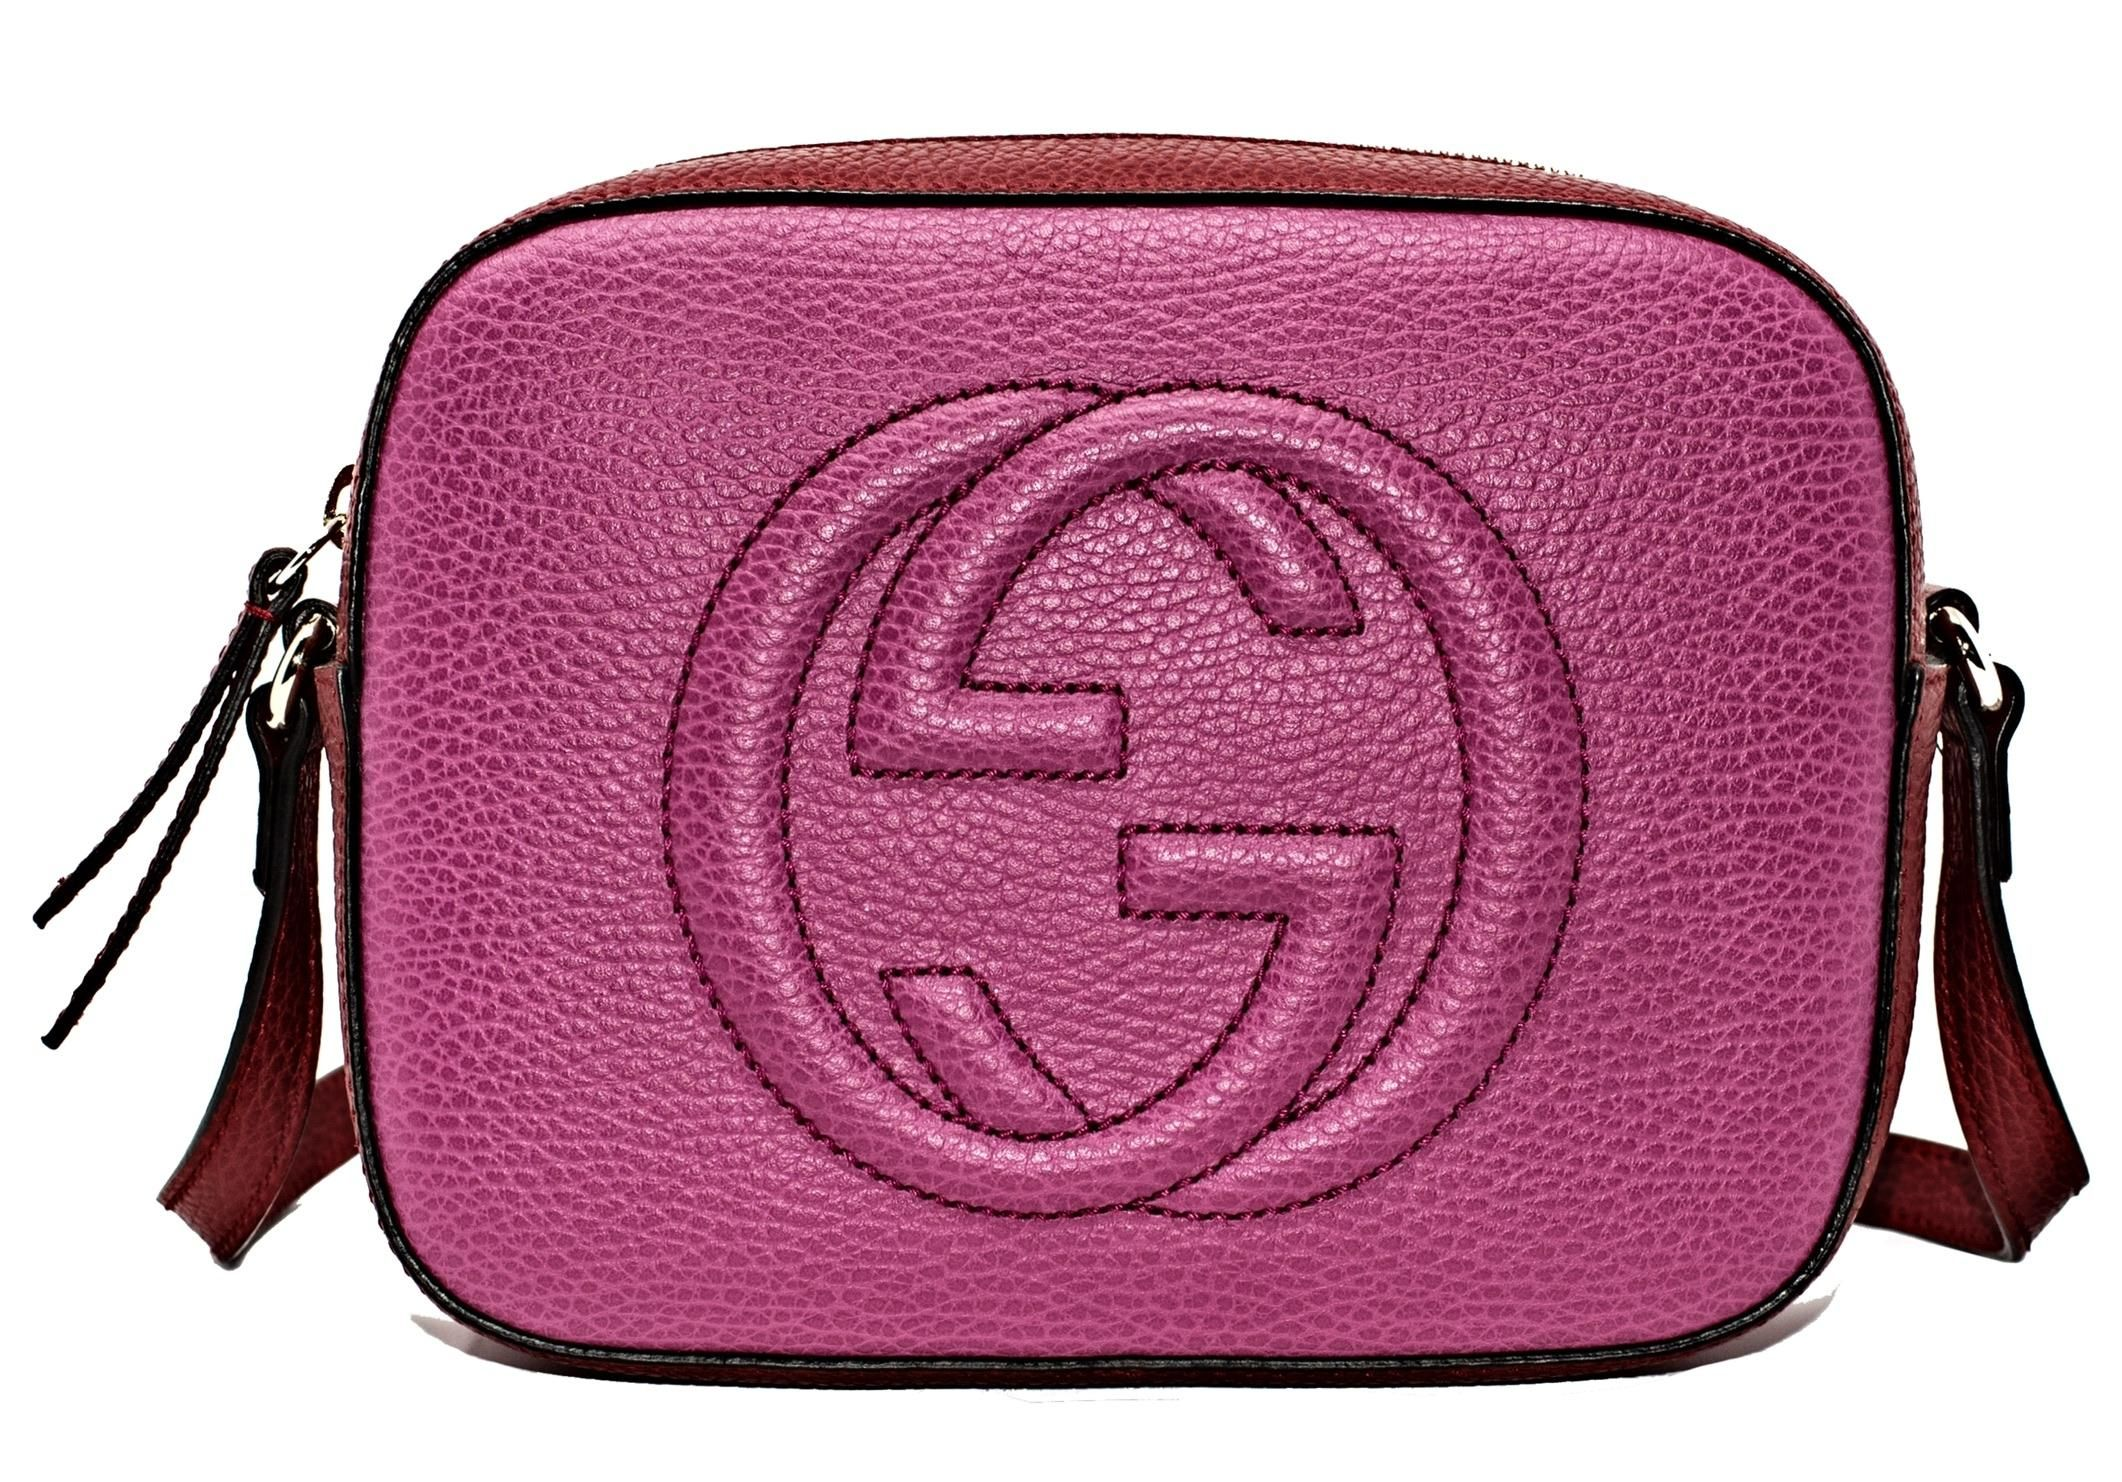 8d0b255dbf5 Gucci Soho New Violet and Magenta Leather Cross Body Bag